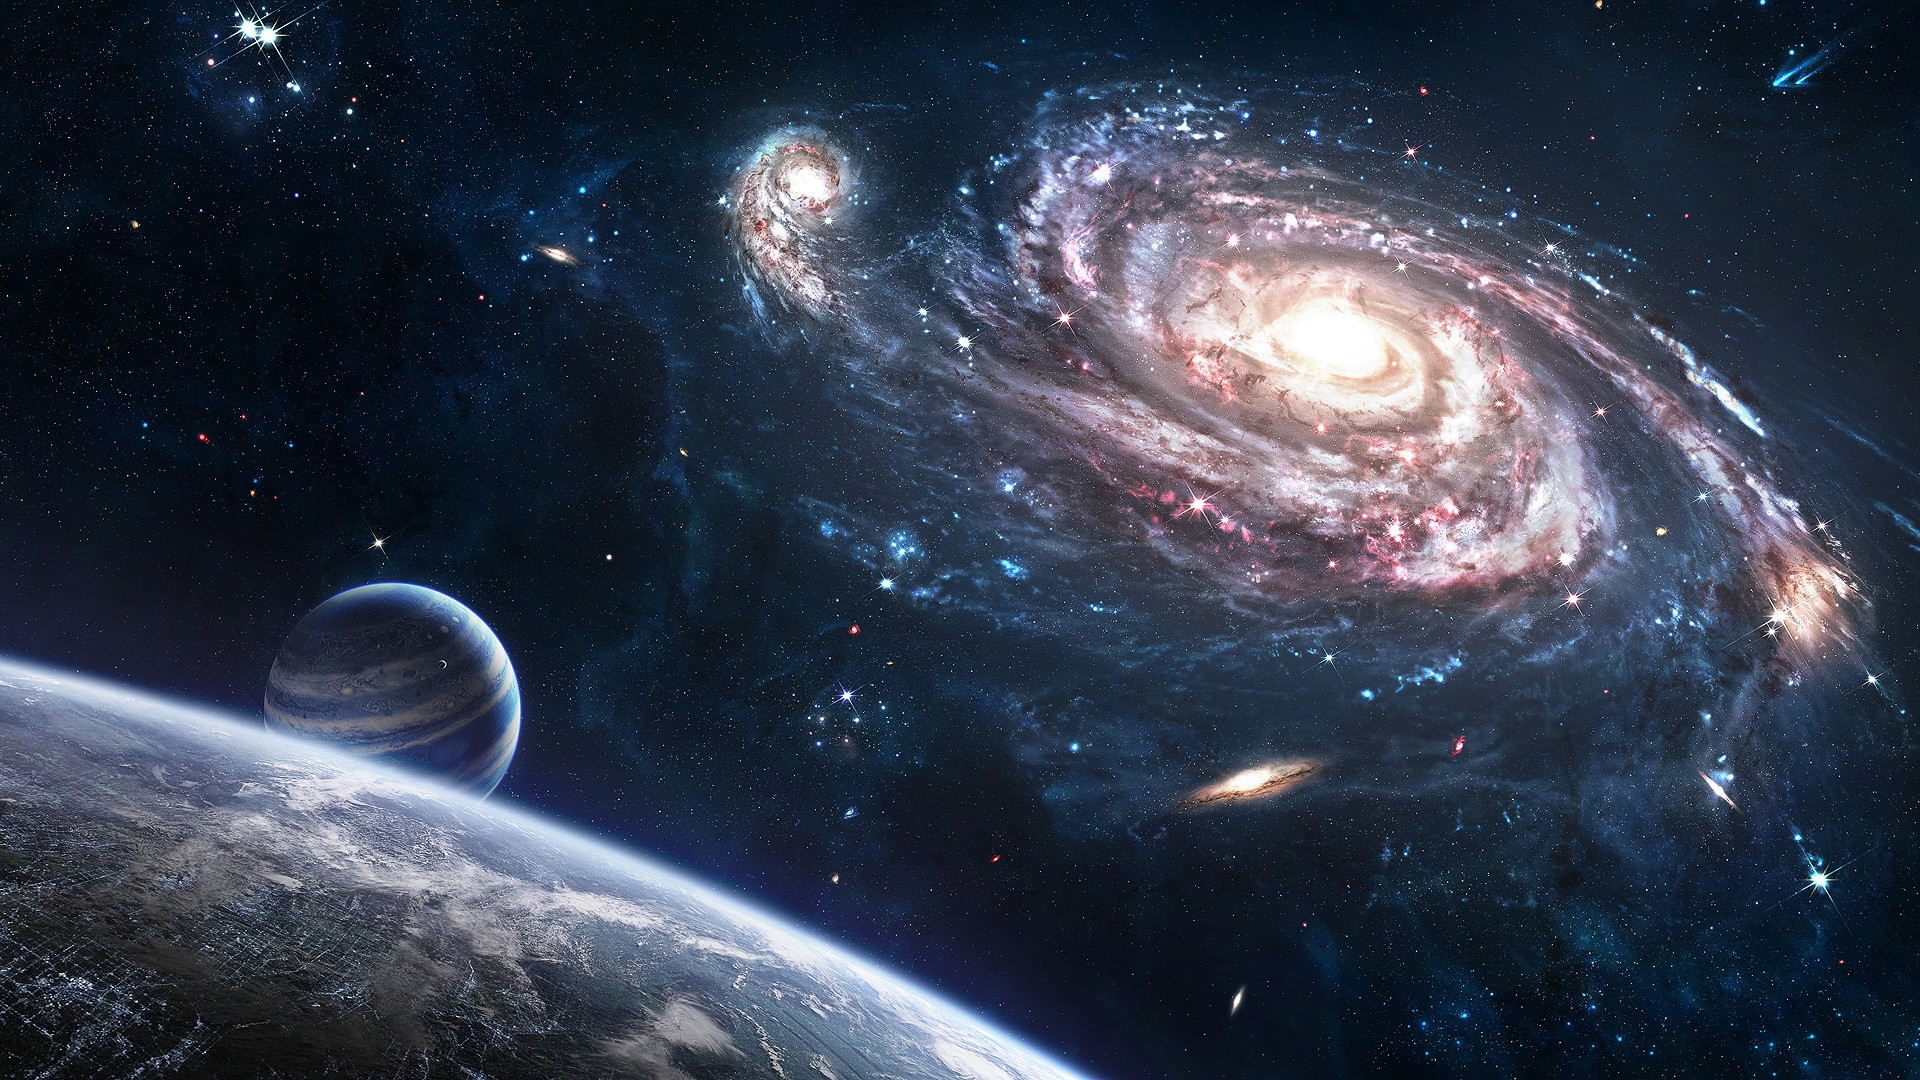 75 cool space backgrounds download free hd wallpapers - Space backgrounds 1920x1080 ...